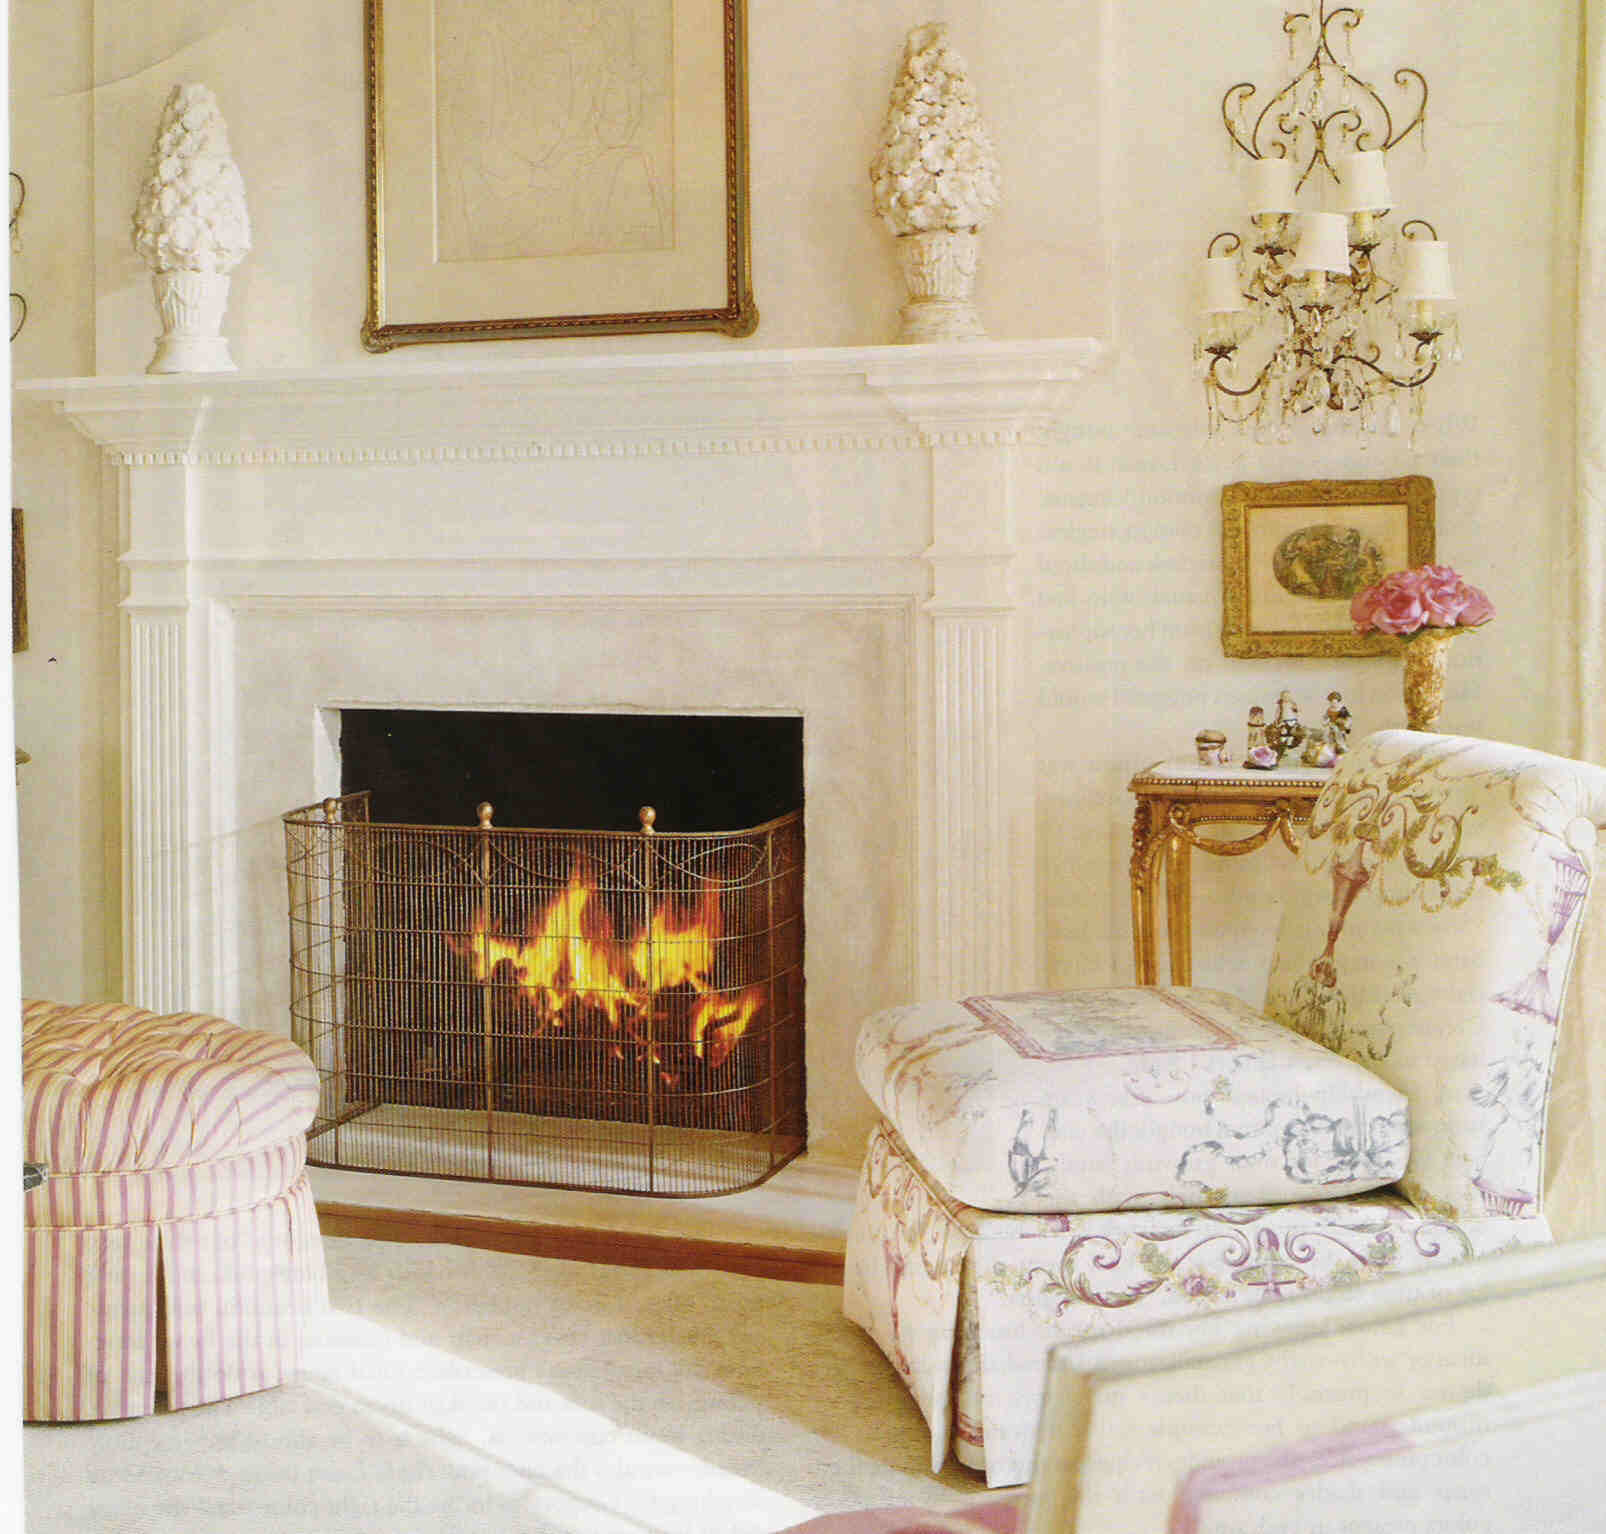 Fireplace mantel design ideas for Fire place mantel ideas